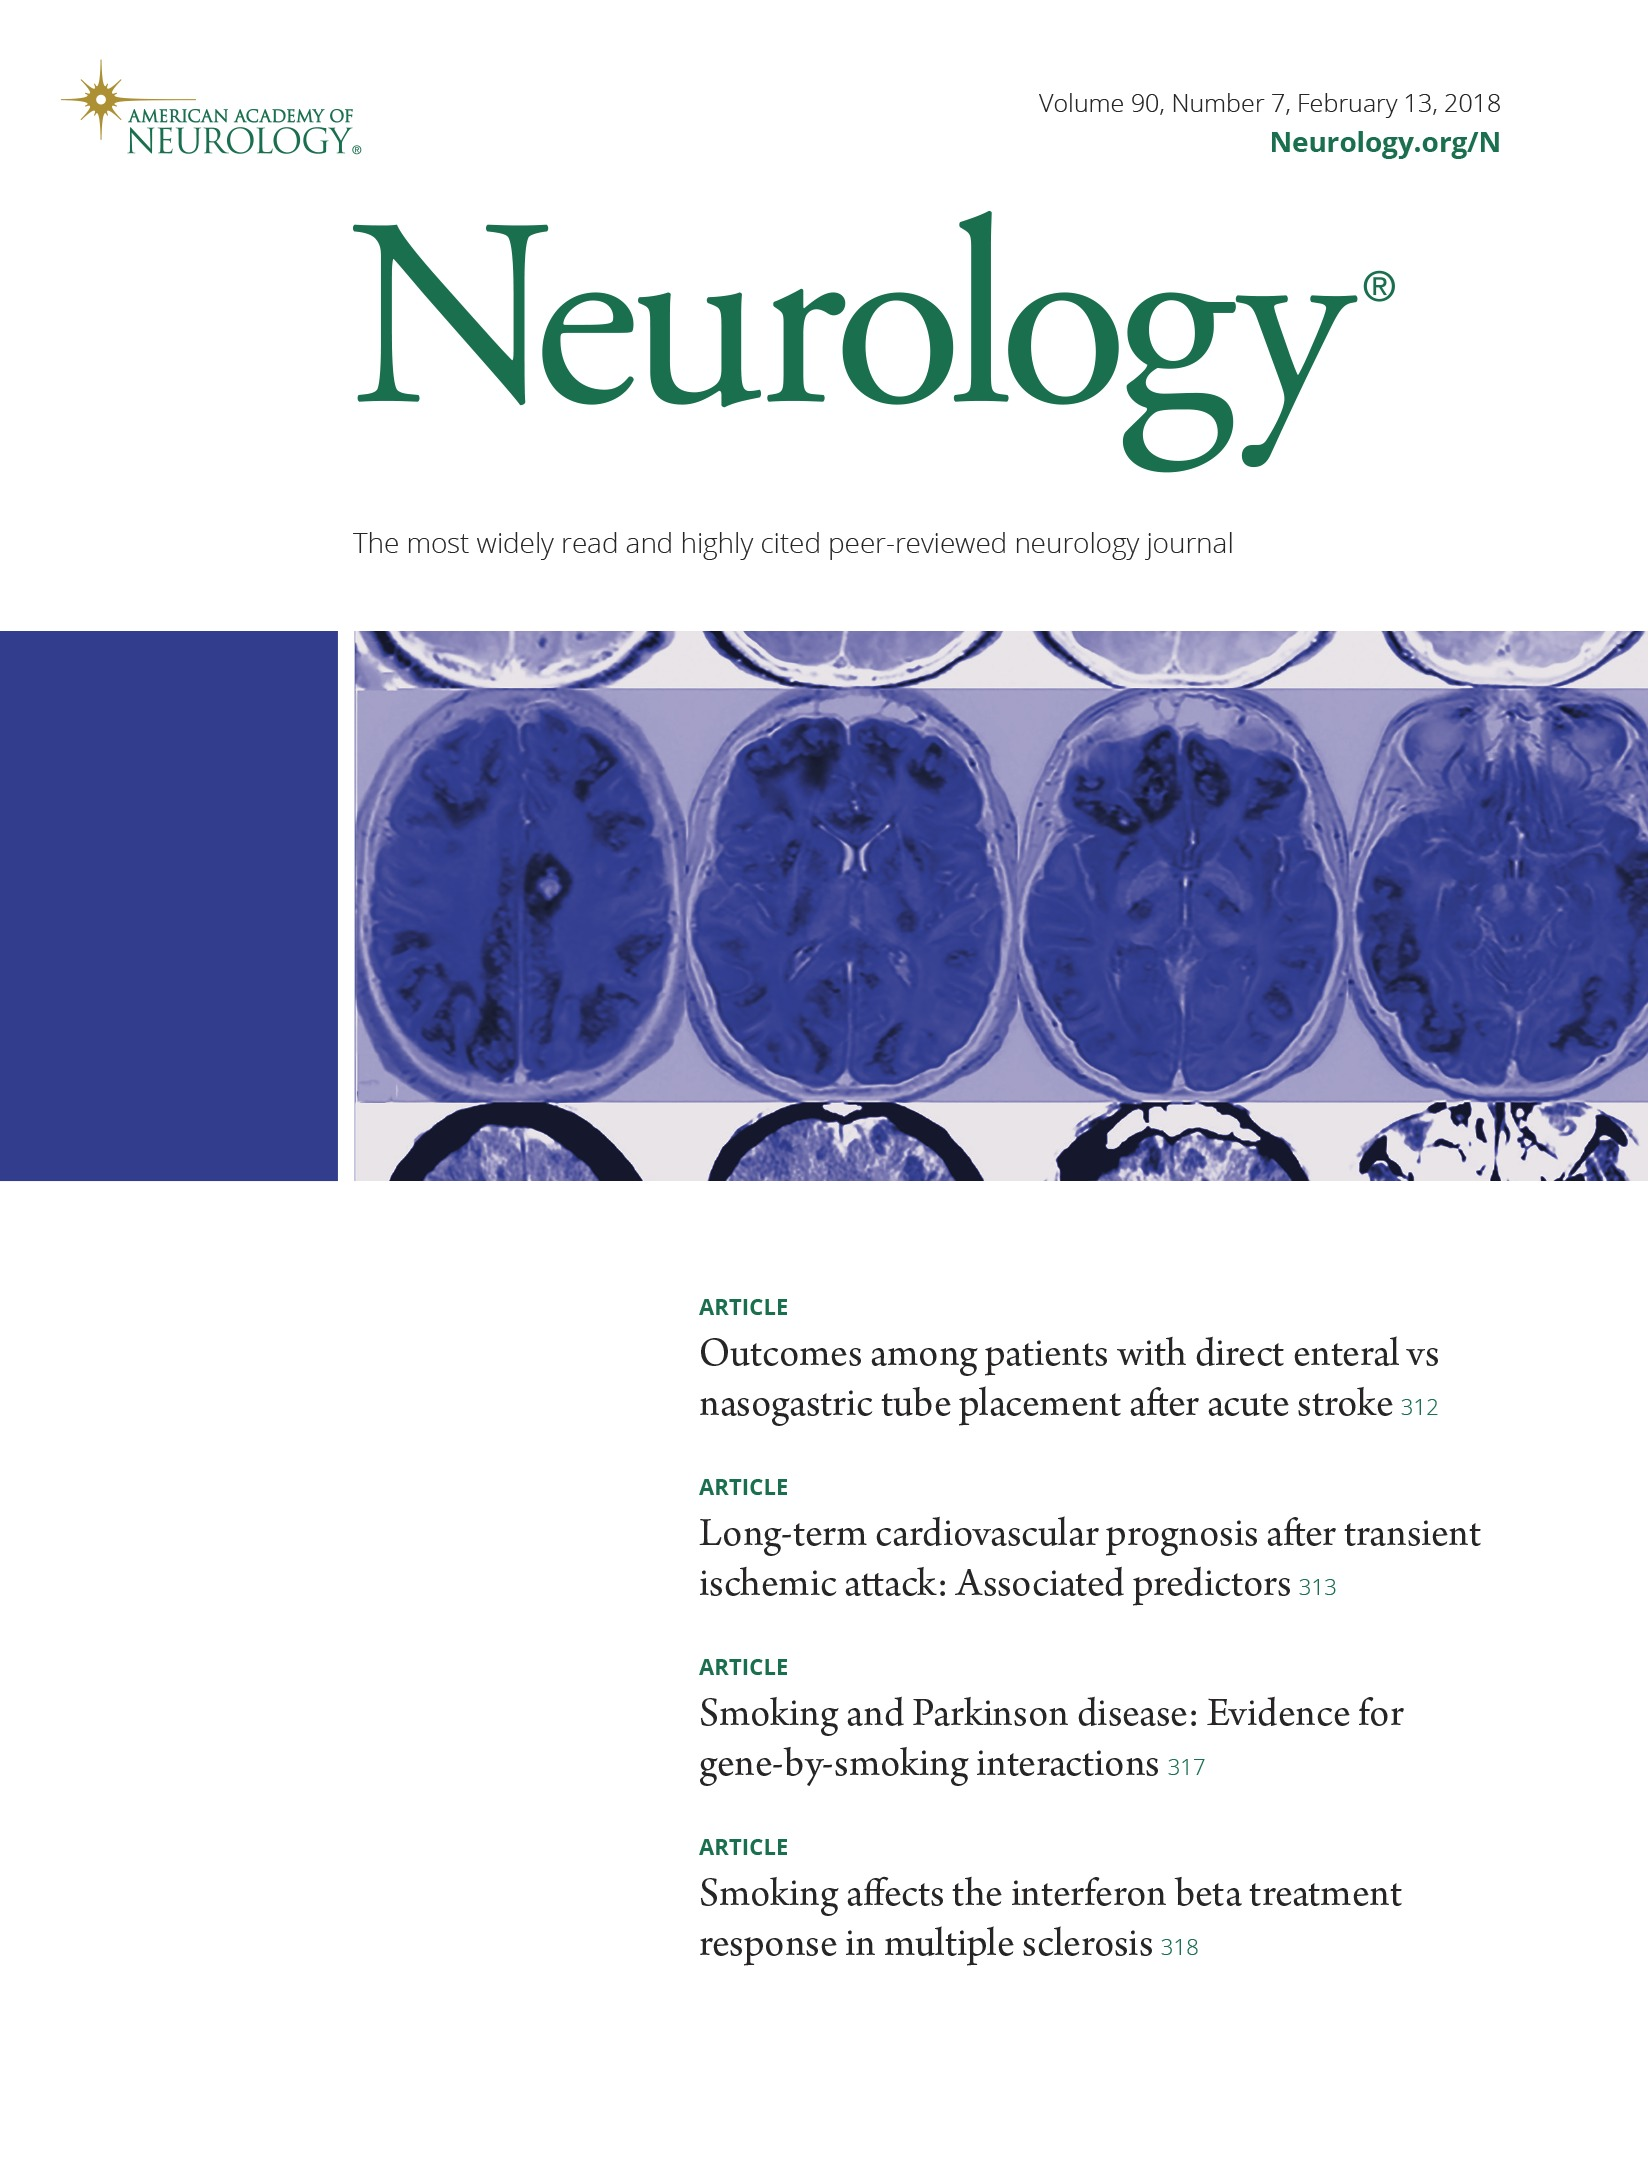 Smoking affects the interferon beta treatment response in multiple